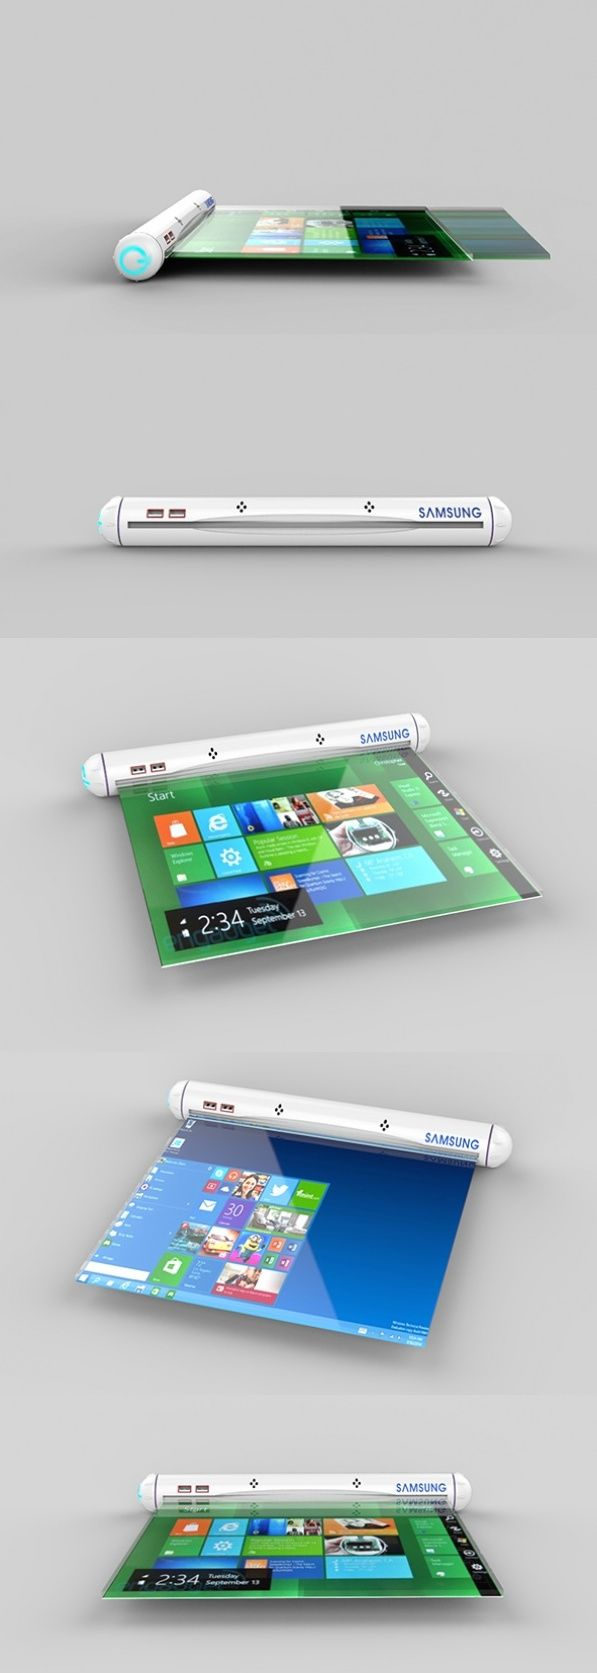 The Samsung Flexible Roll applies future #flex tech to create the most portable tablet laptop. Simply amazing//ceciliacarroharvey.org